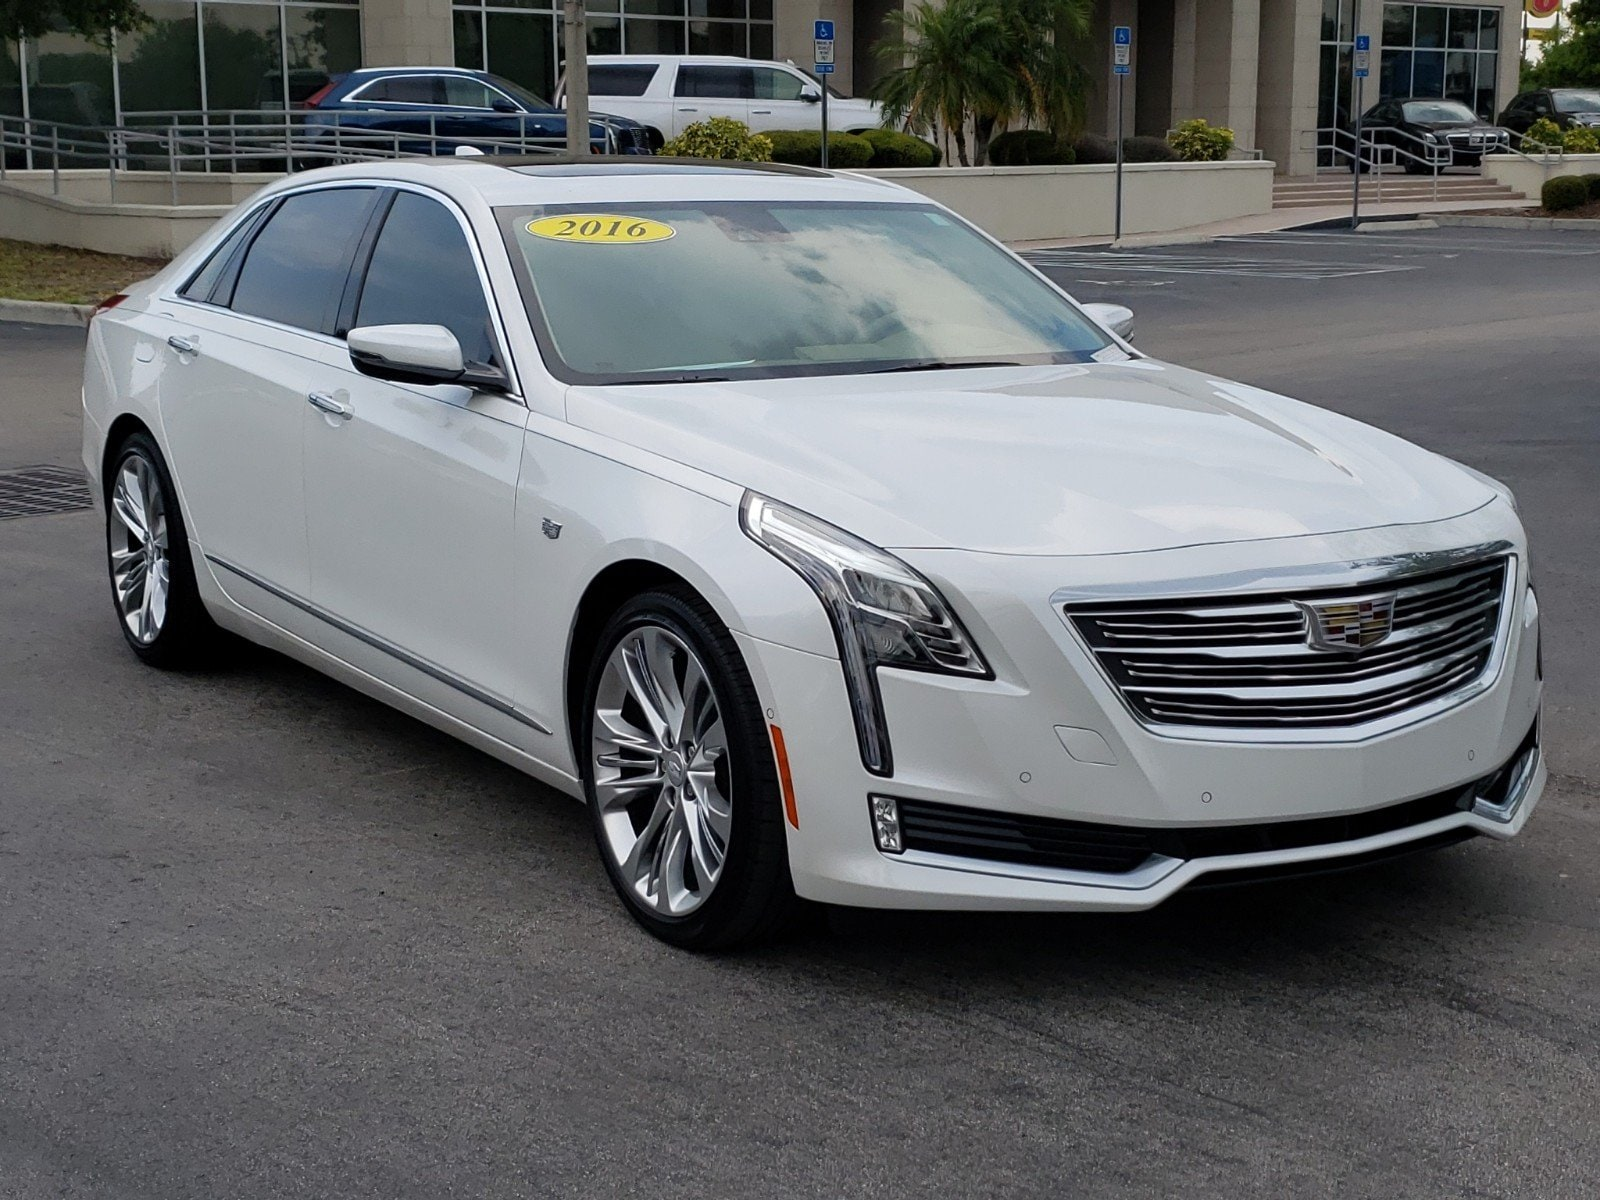 2016 CADILLAC CT6 3.6L Platinum Sedan